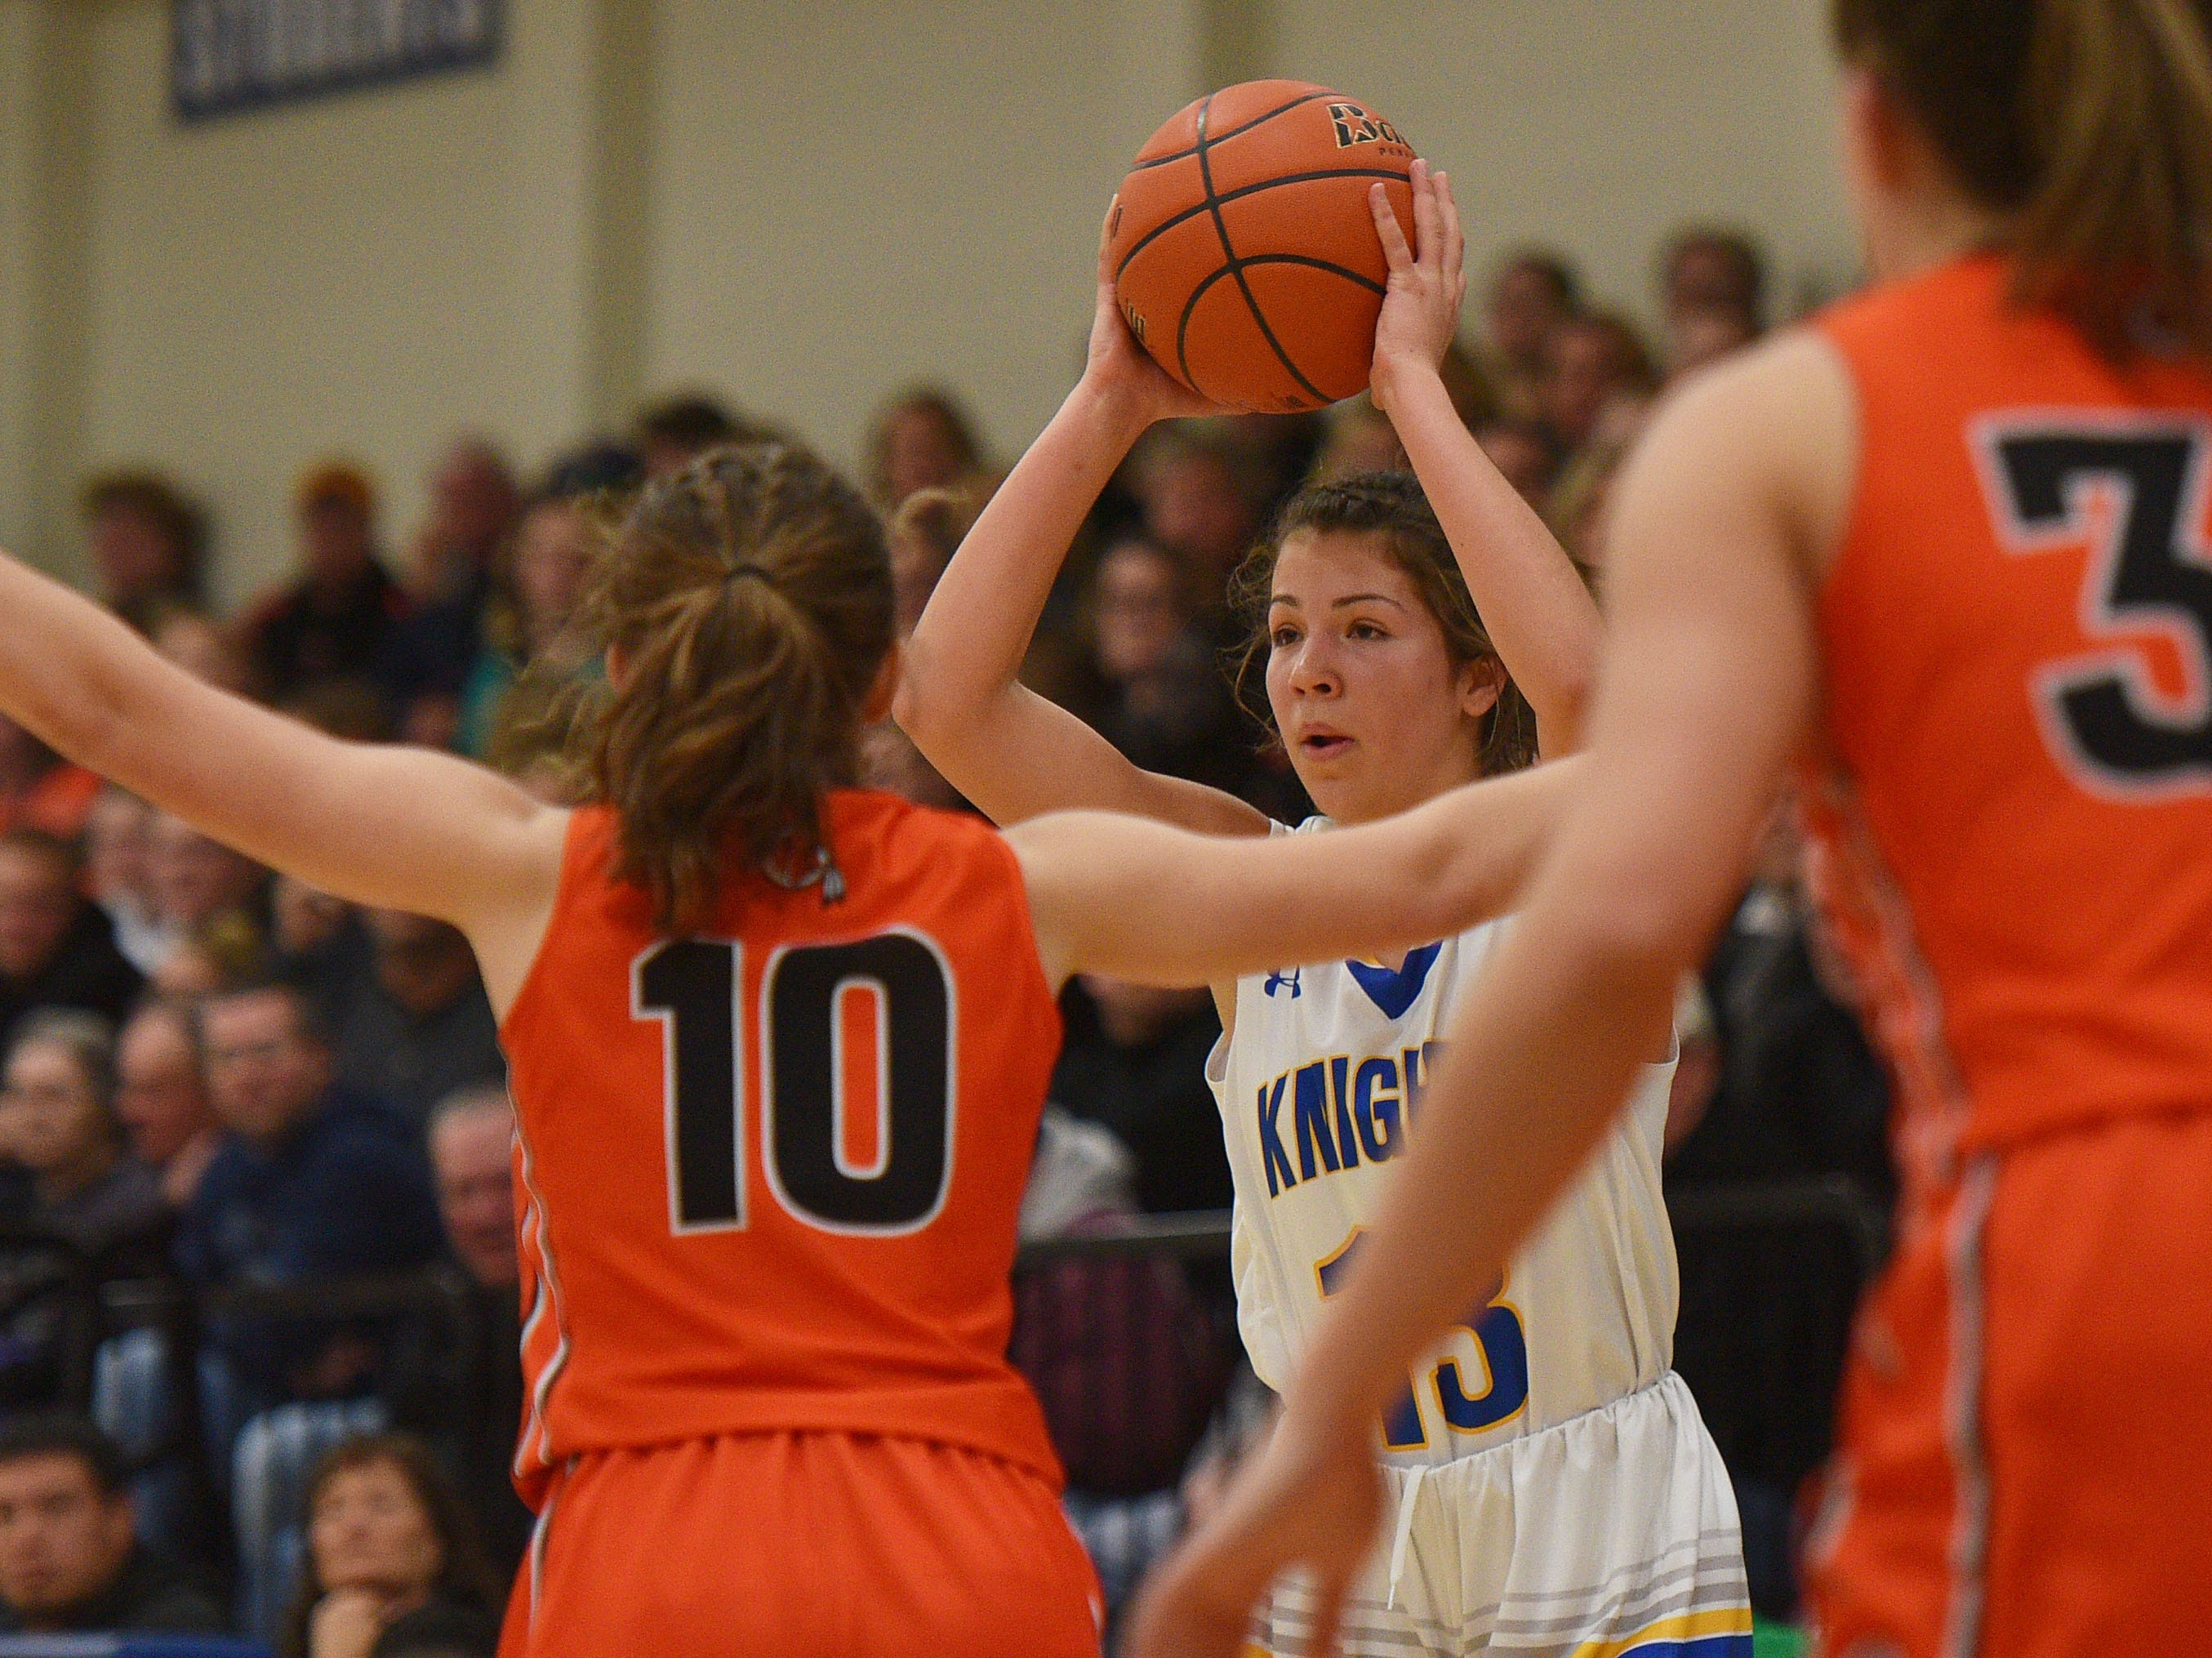 O'Gorman's Isabelle Moore goes against Washington defense during the game Thursday, Jan. 10, at O'Gorman in Sioux Falls.